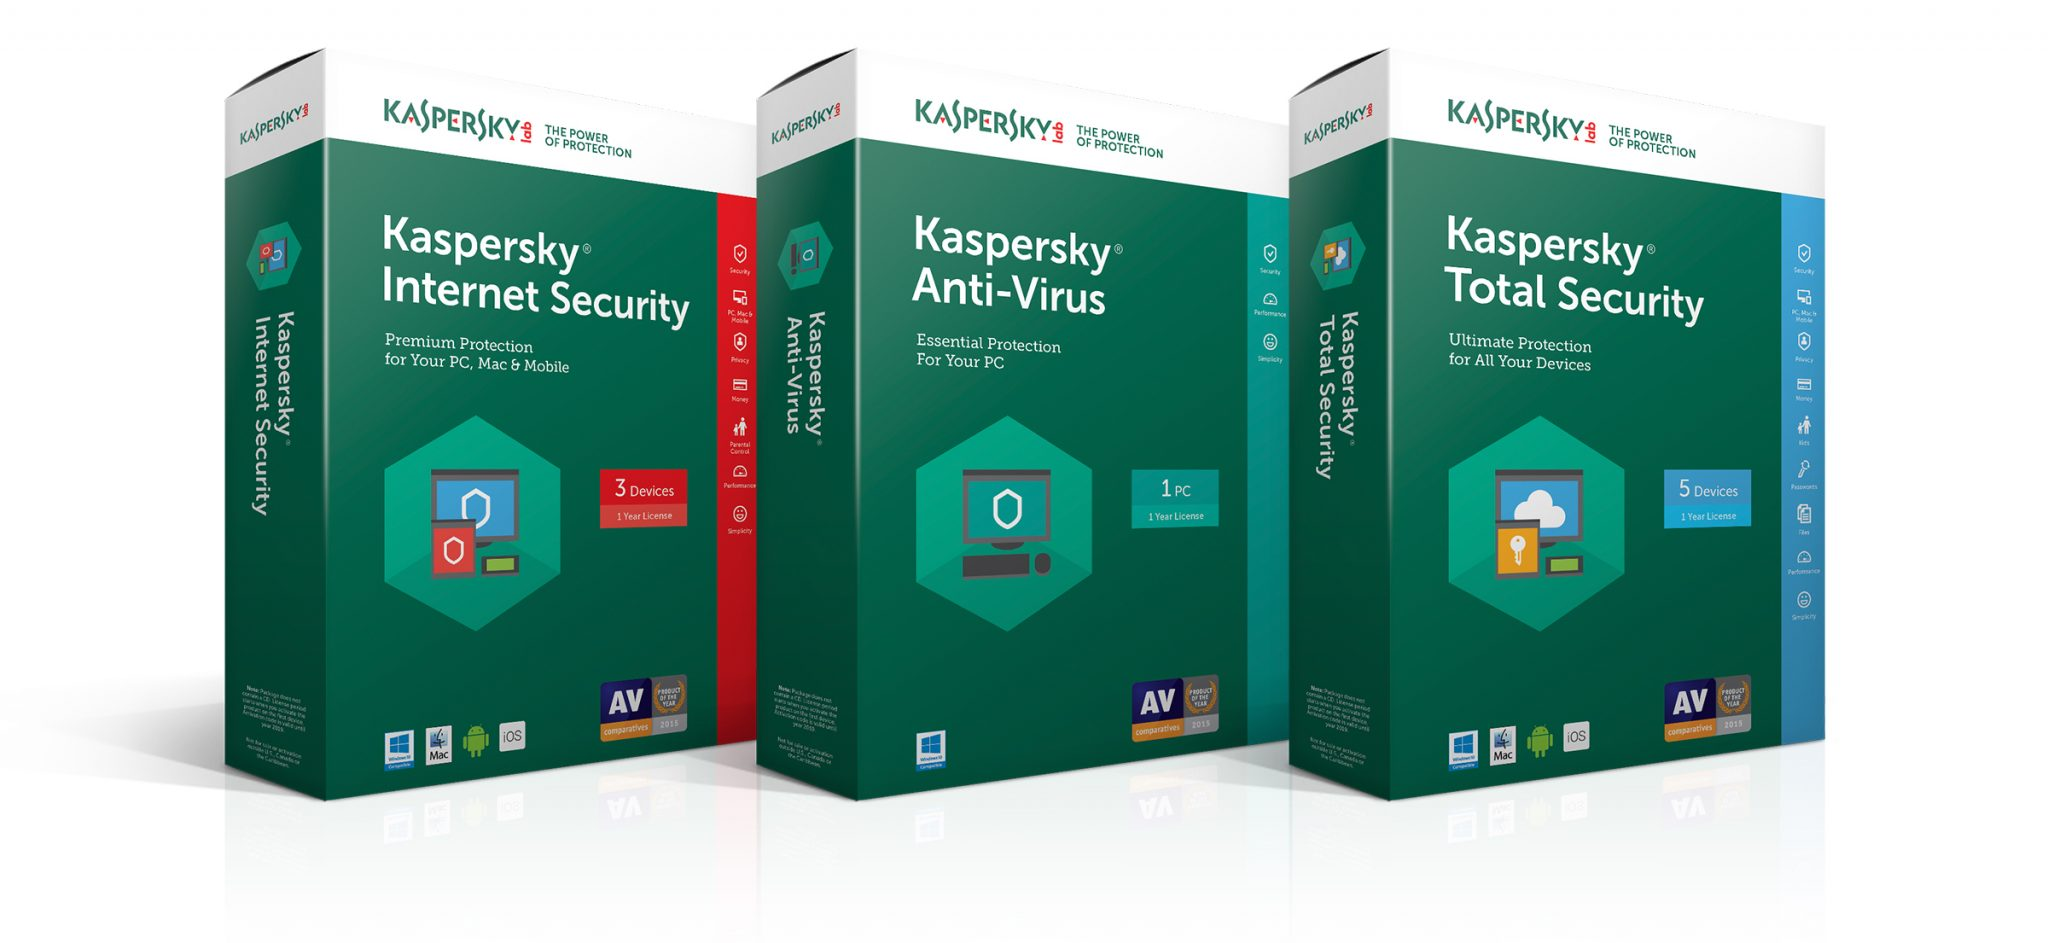 Kaspersky Shopping Guide